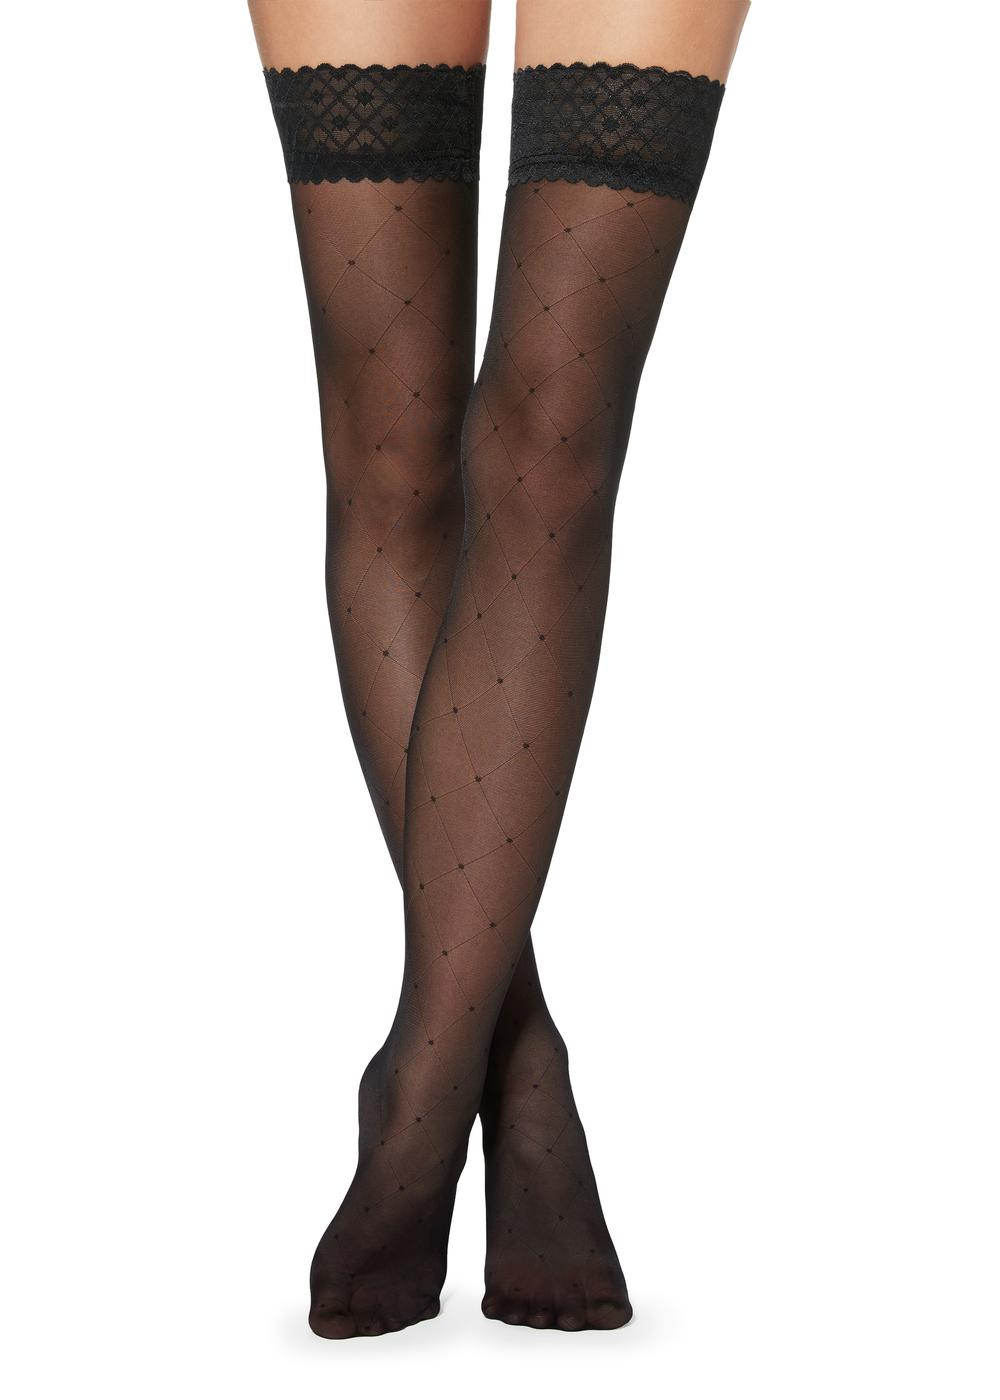 Diamond and polka dot patterned hold-ups with tulle top